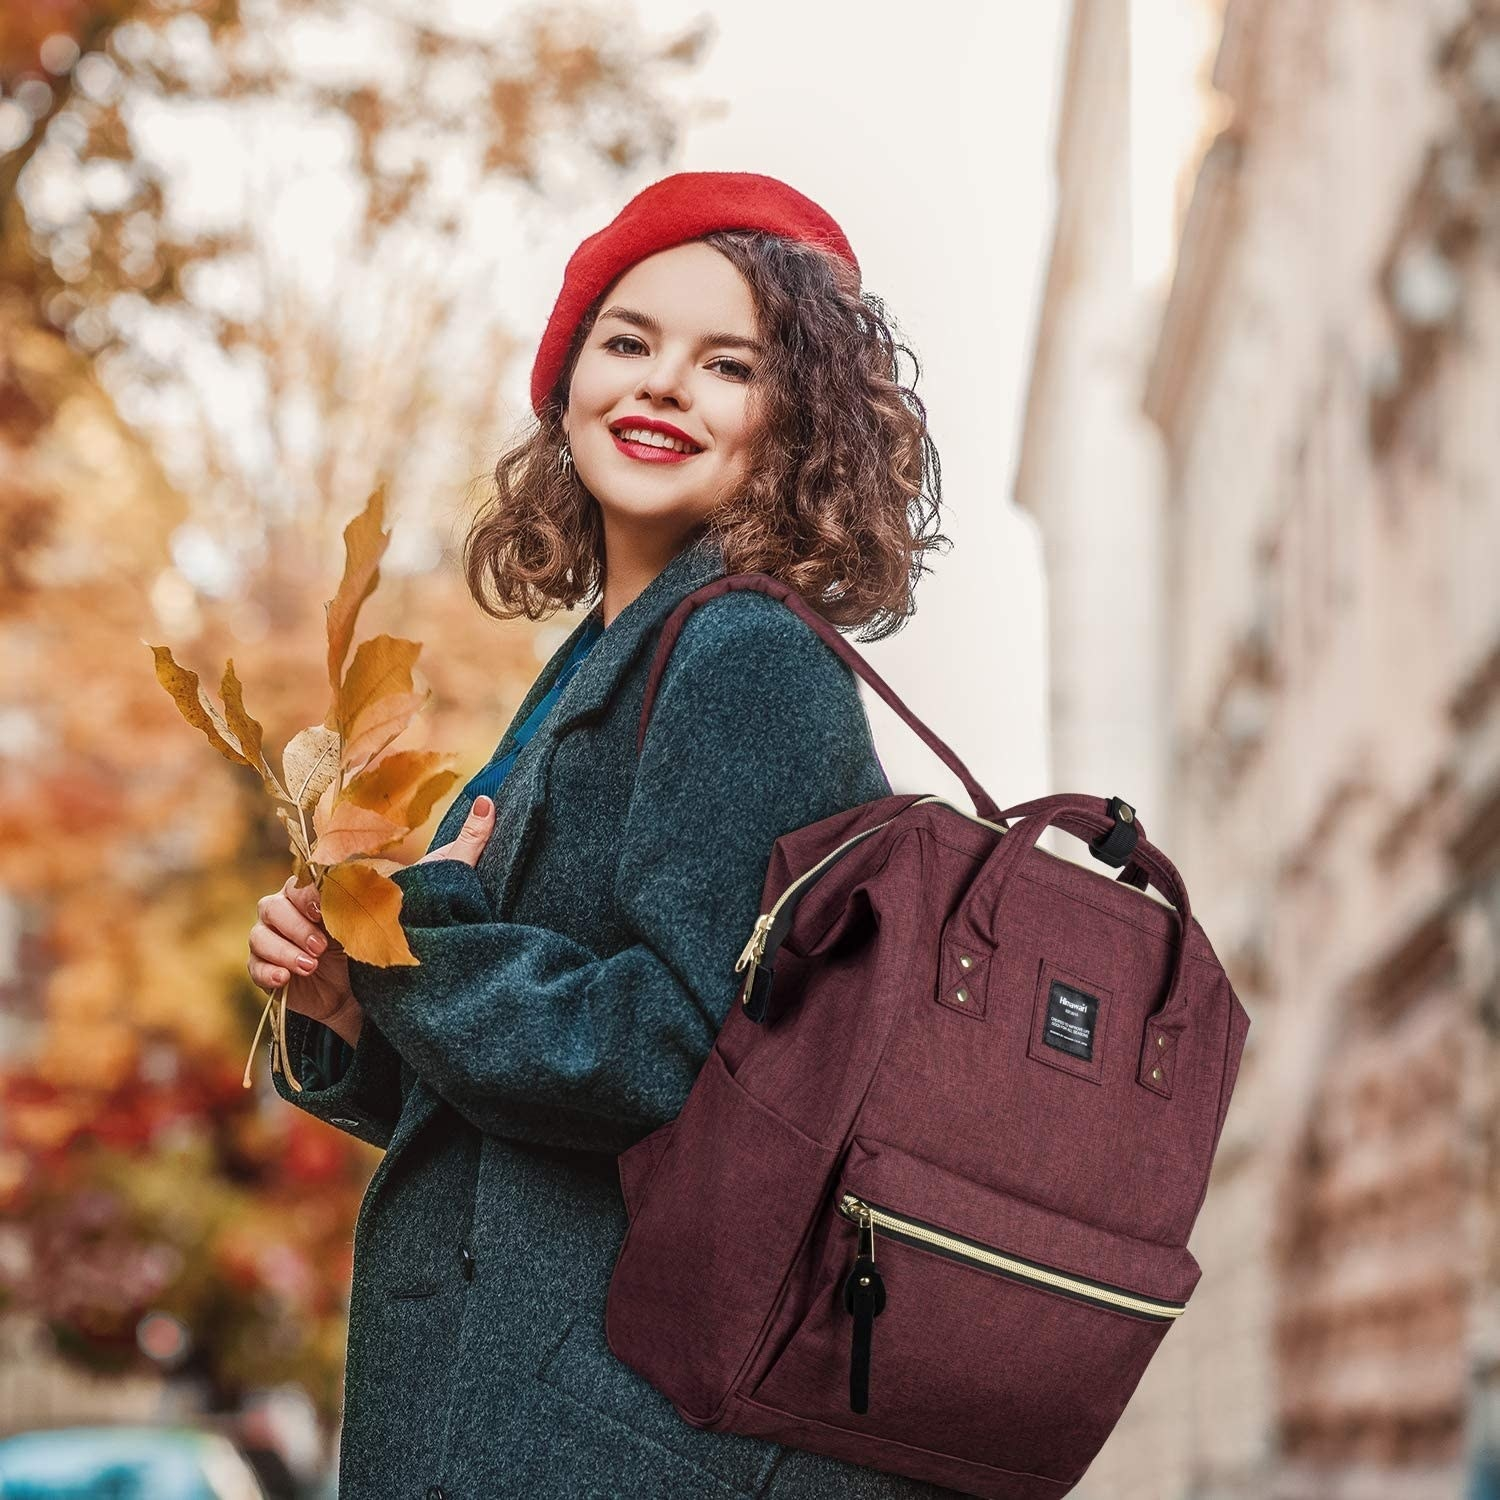 A smiling person wears the backpack while walking through a city street